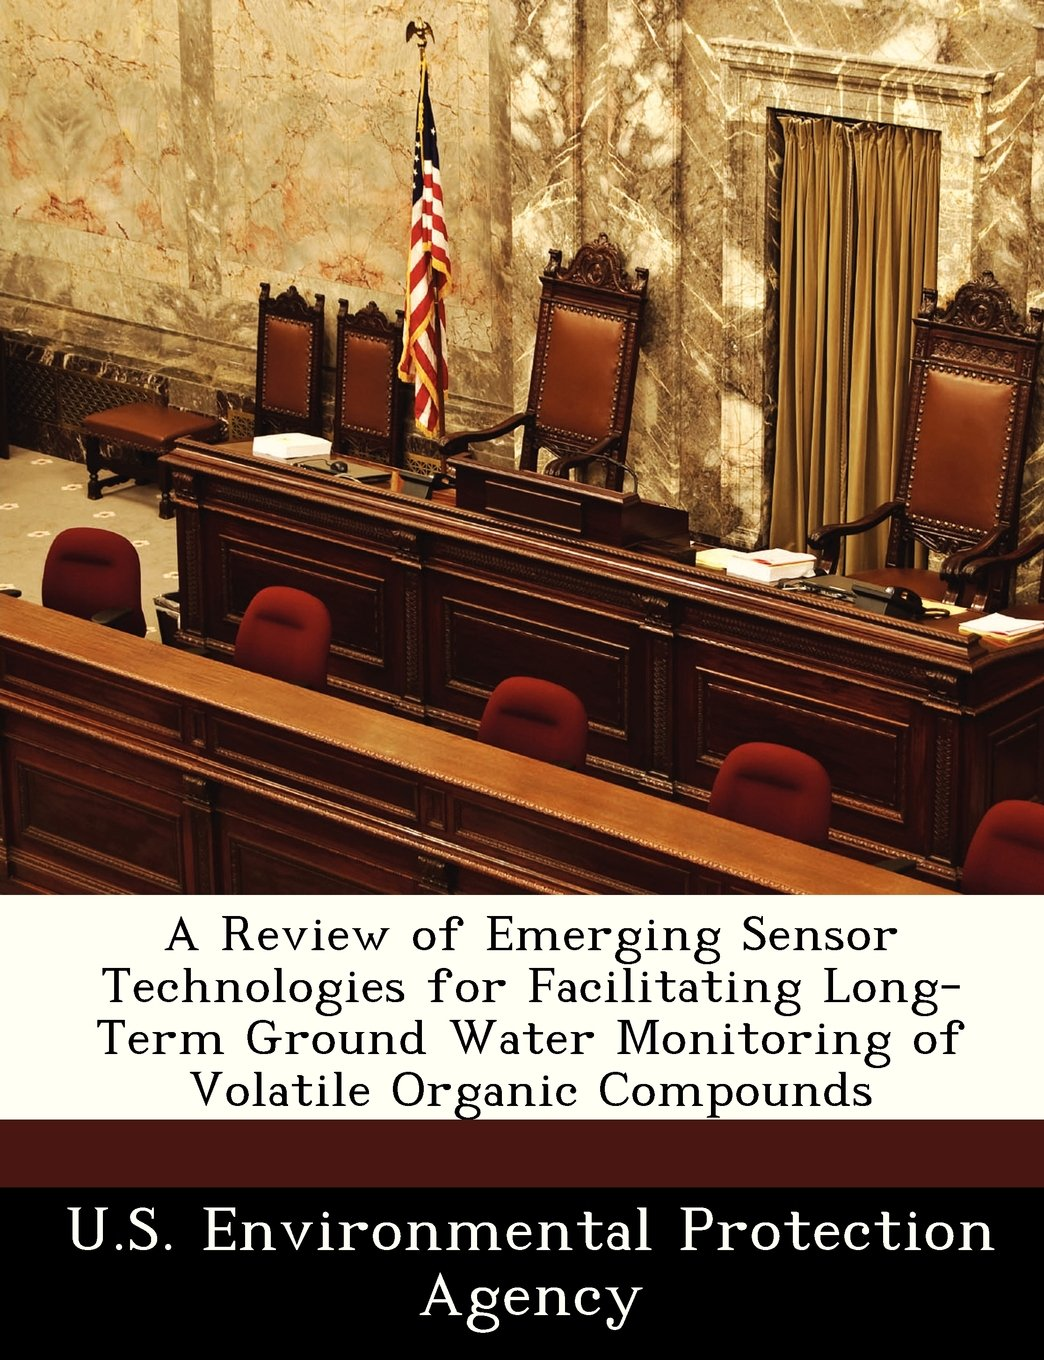 A Review of Emerging Sensor Technologies for Facilitating Long-Term Ground Water Monitoring of Volatile Organic Compounds PDF